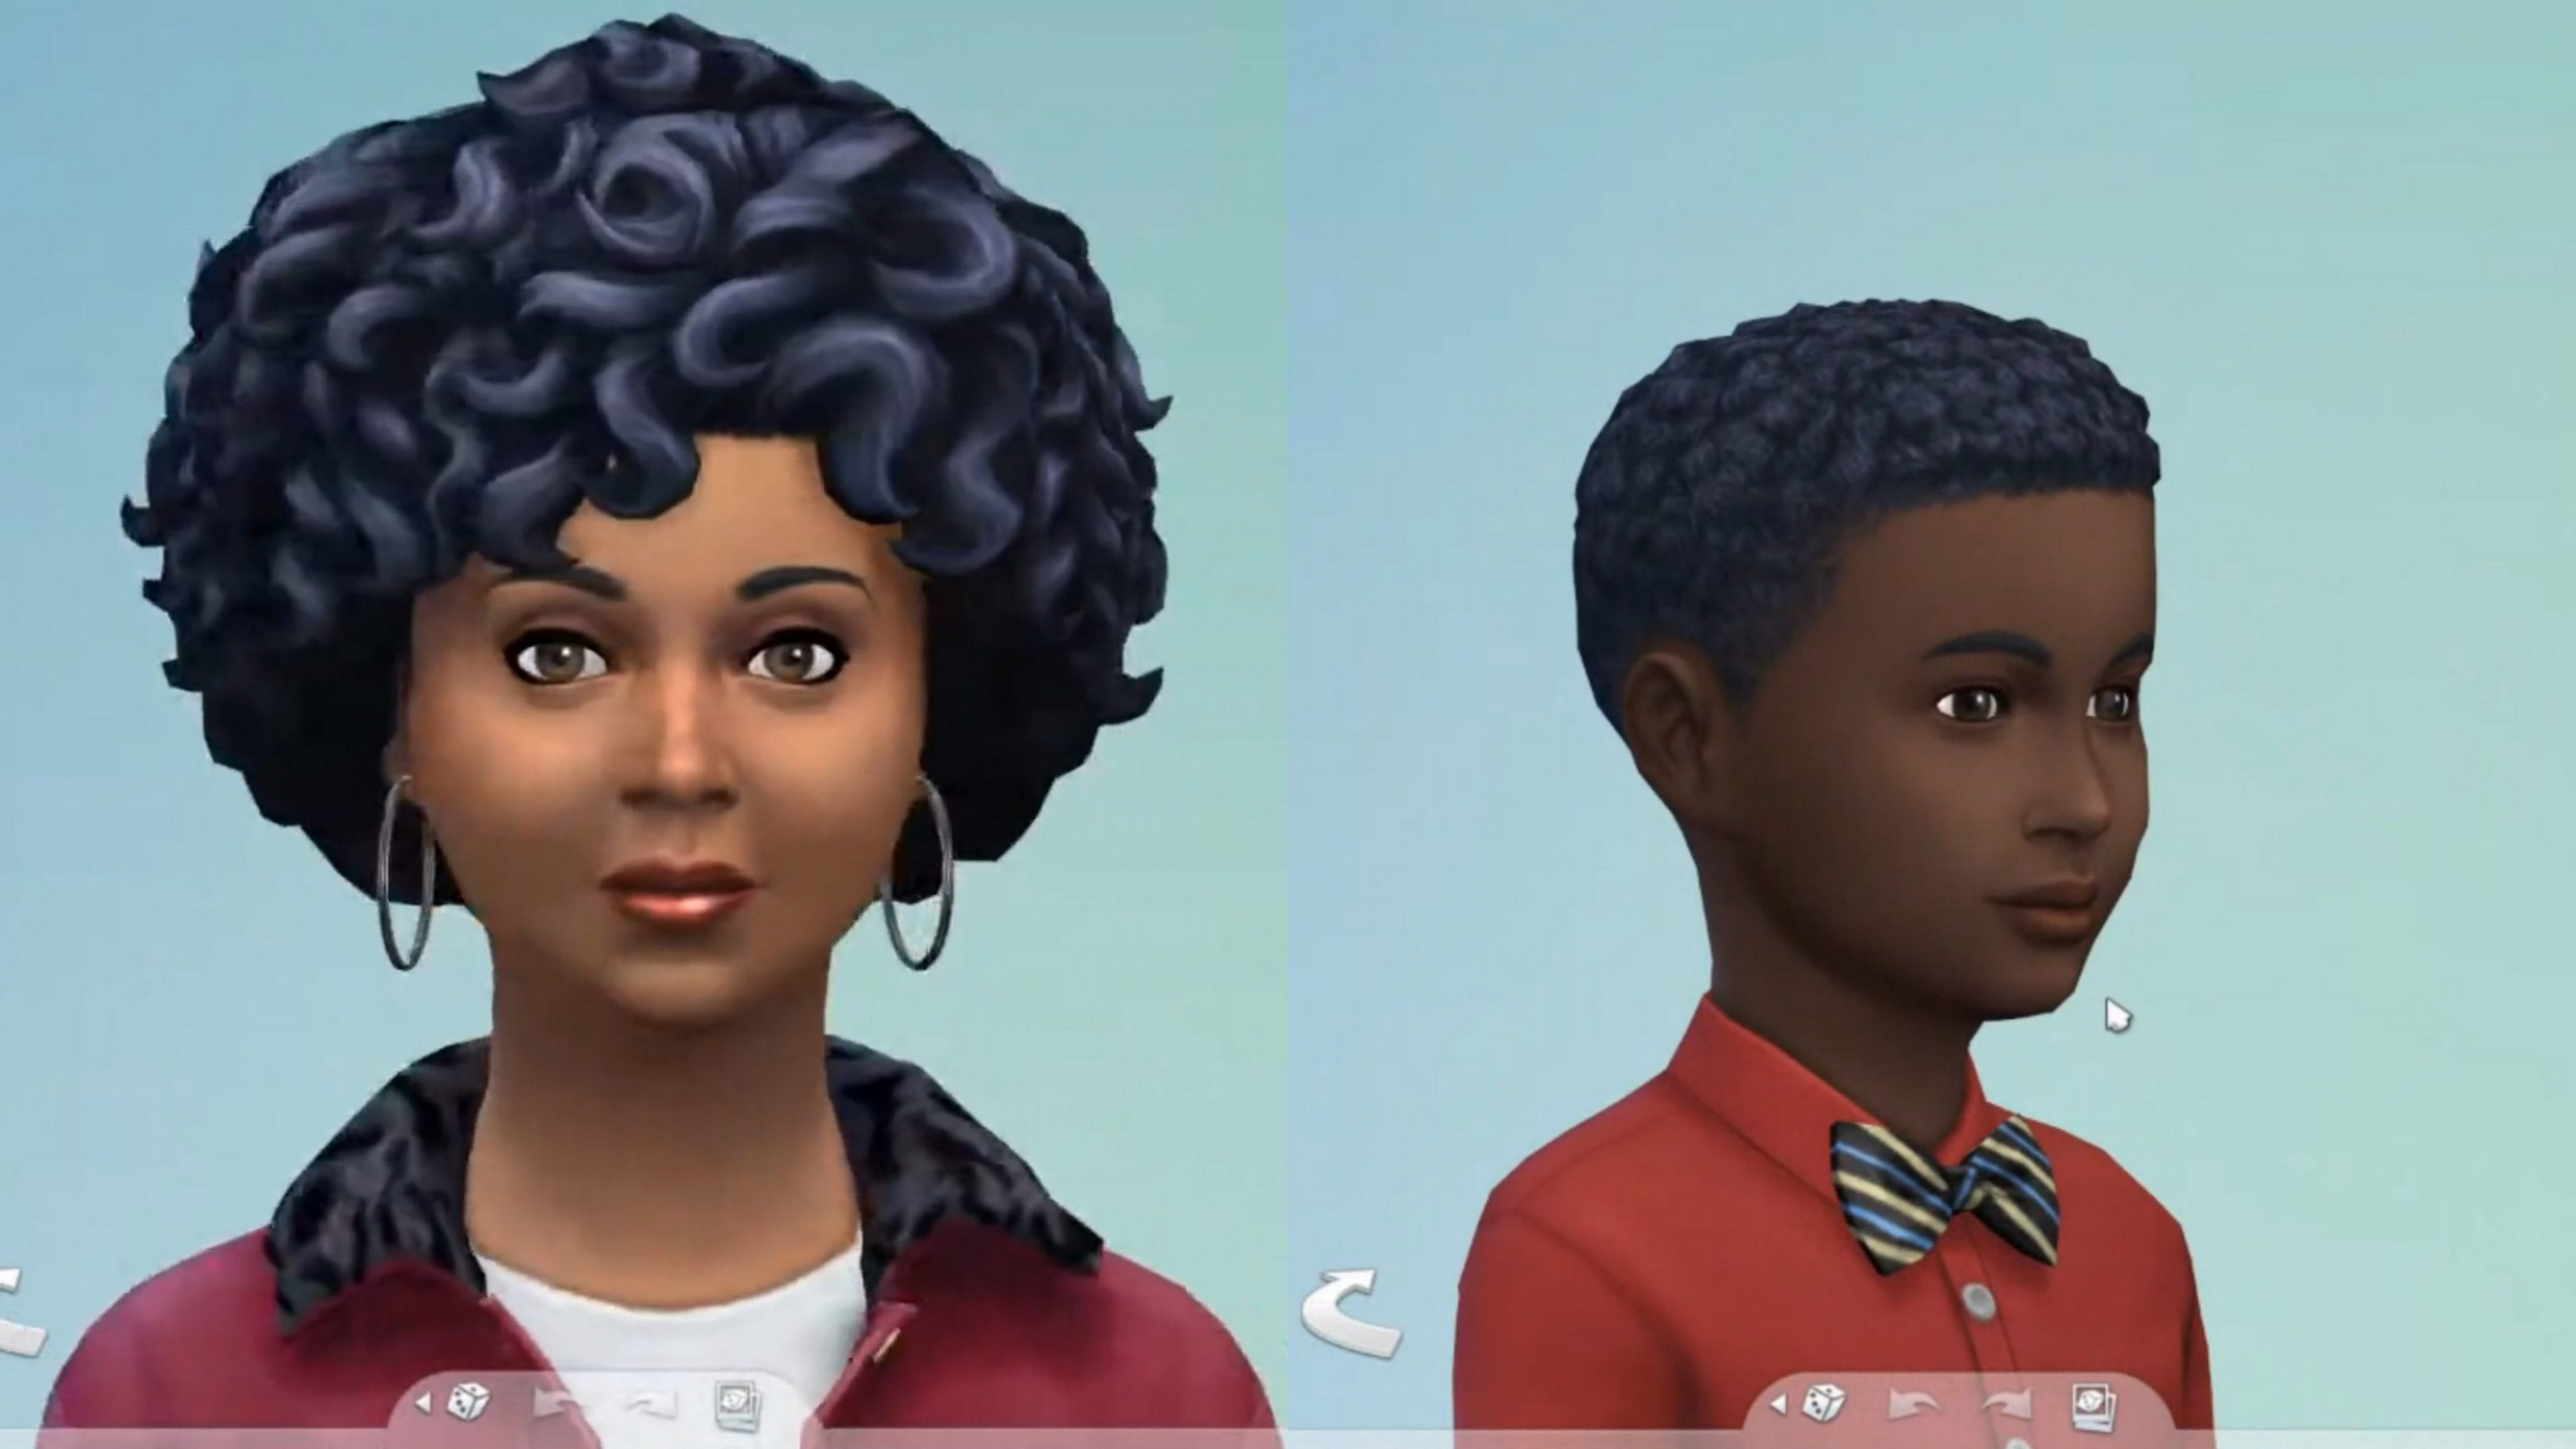 Sims 4 coiffures afro